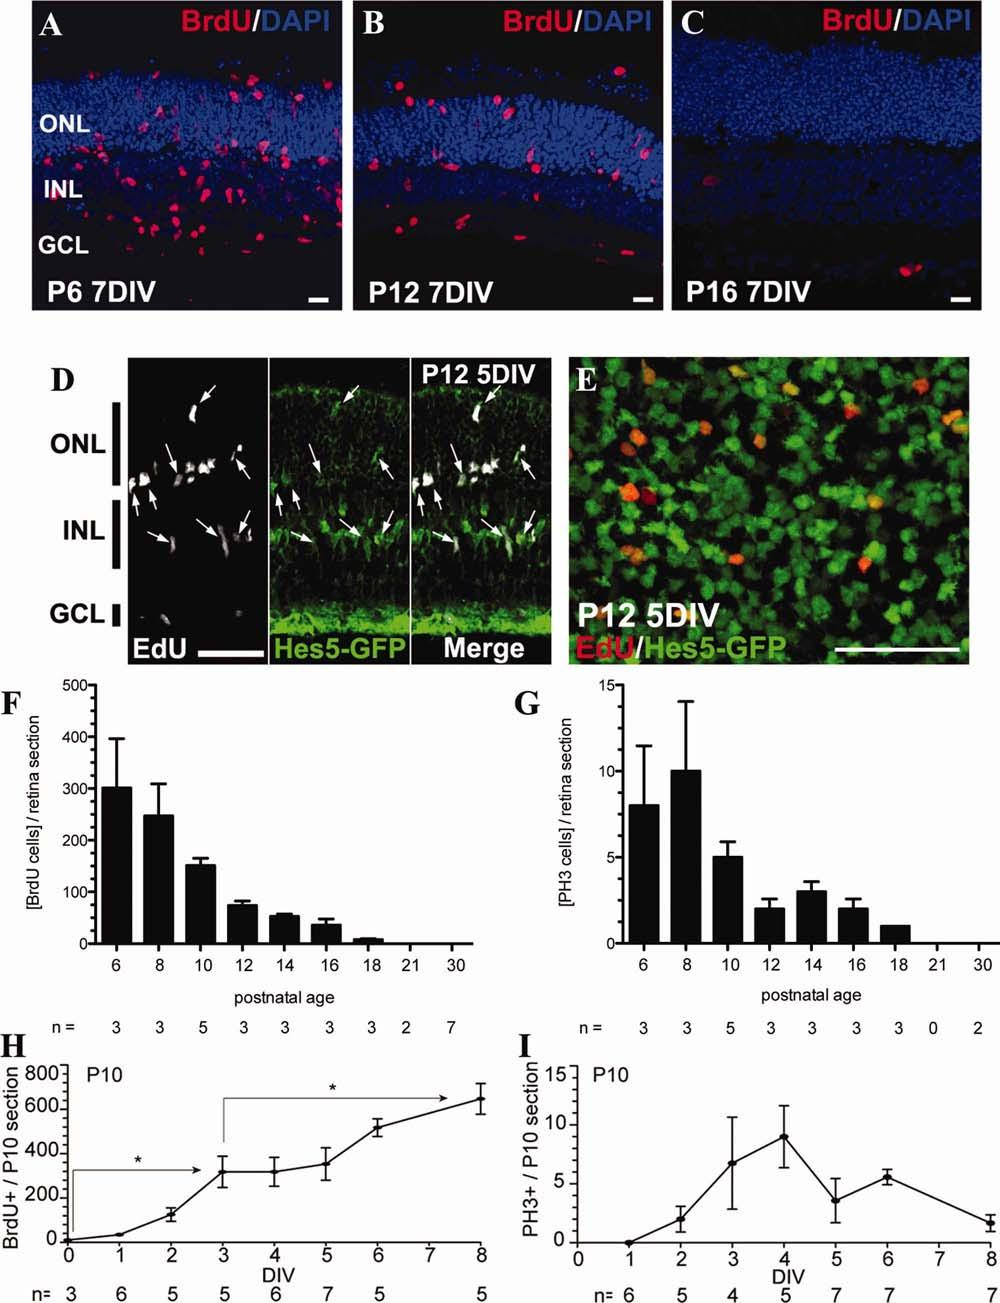 1582 UEKI ET AL. Fig. 1. Stimulation of M uller glial proliferation in retinal explants ex vivo is age-dependent.